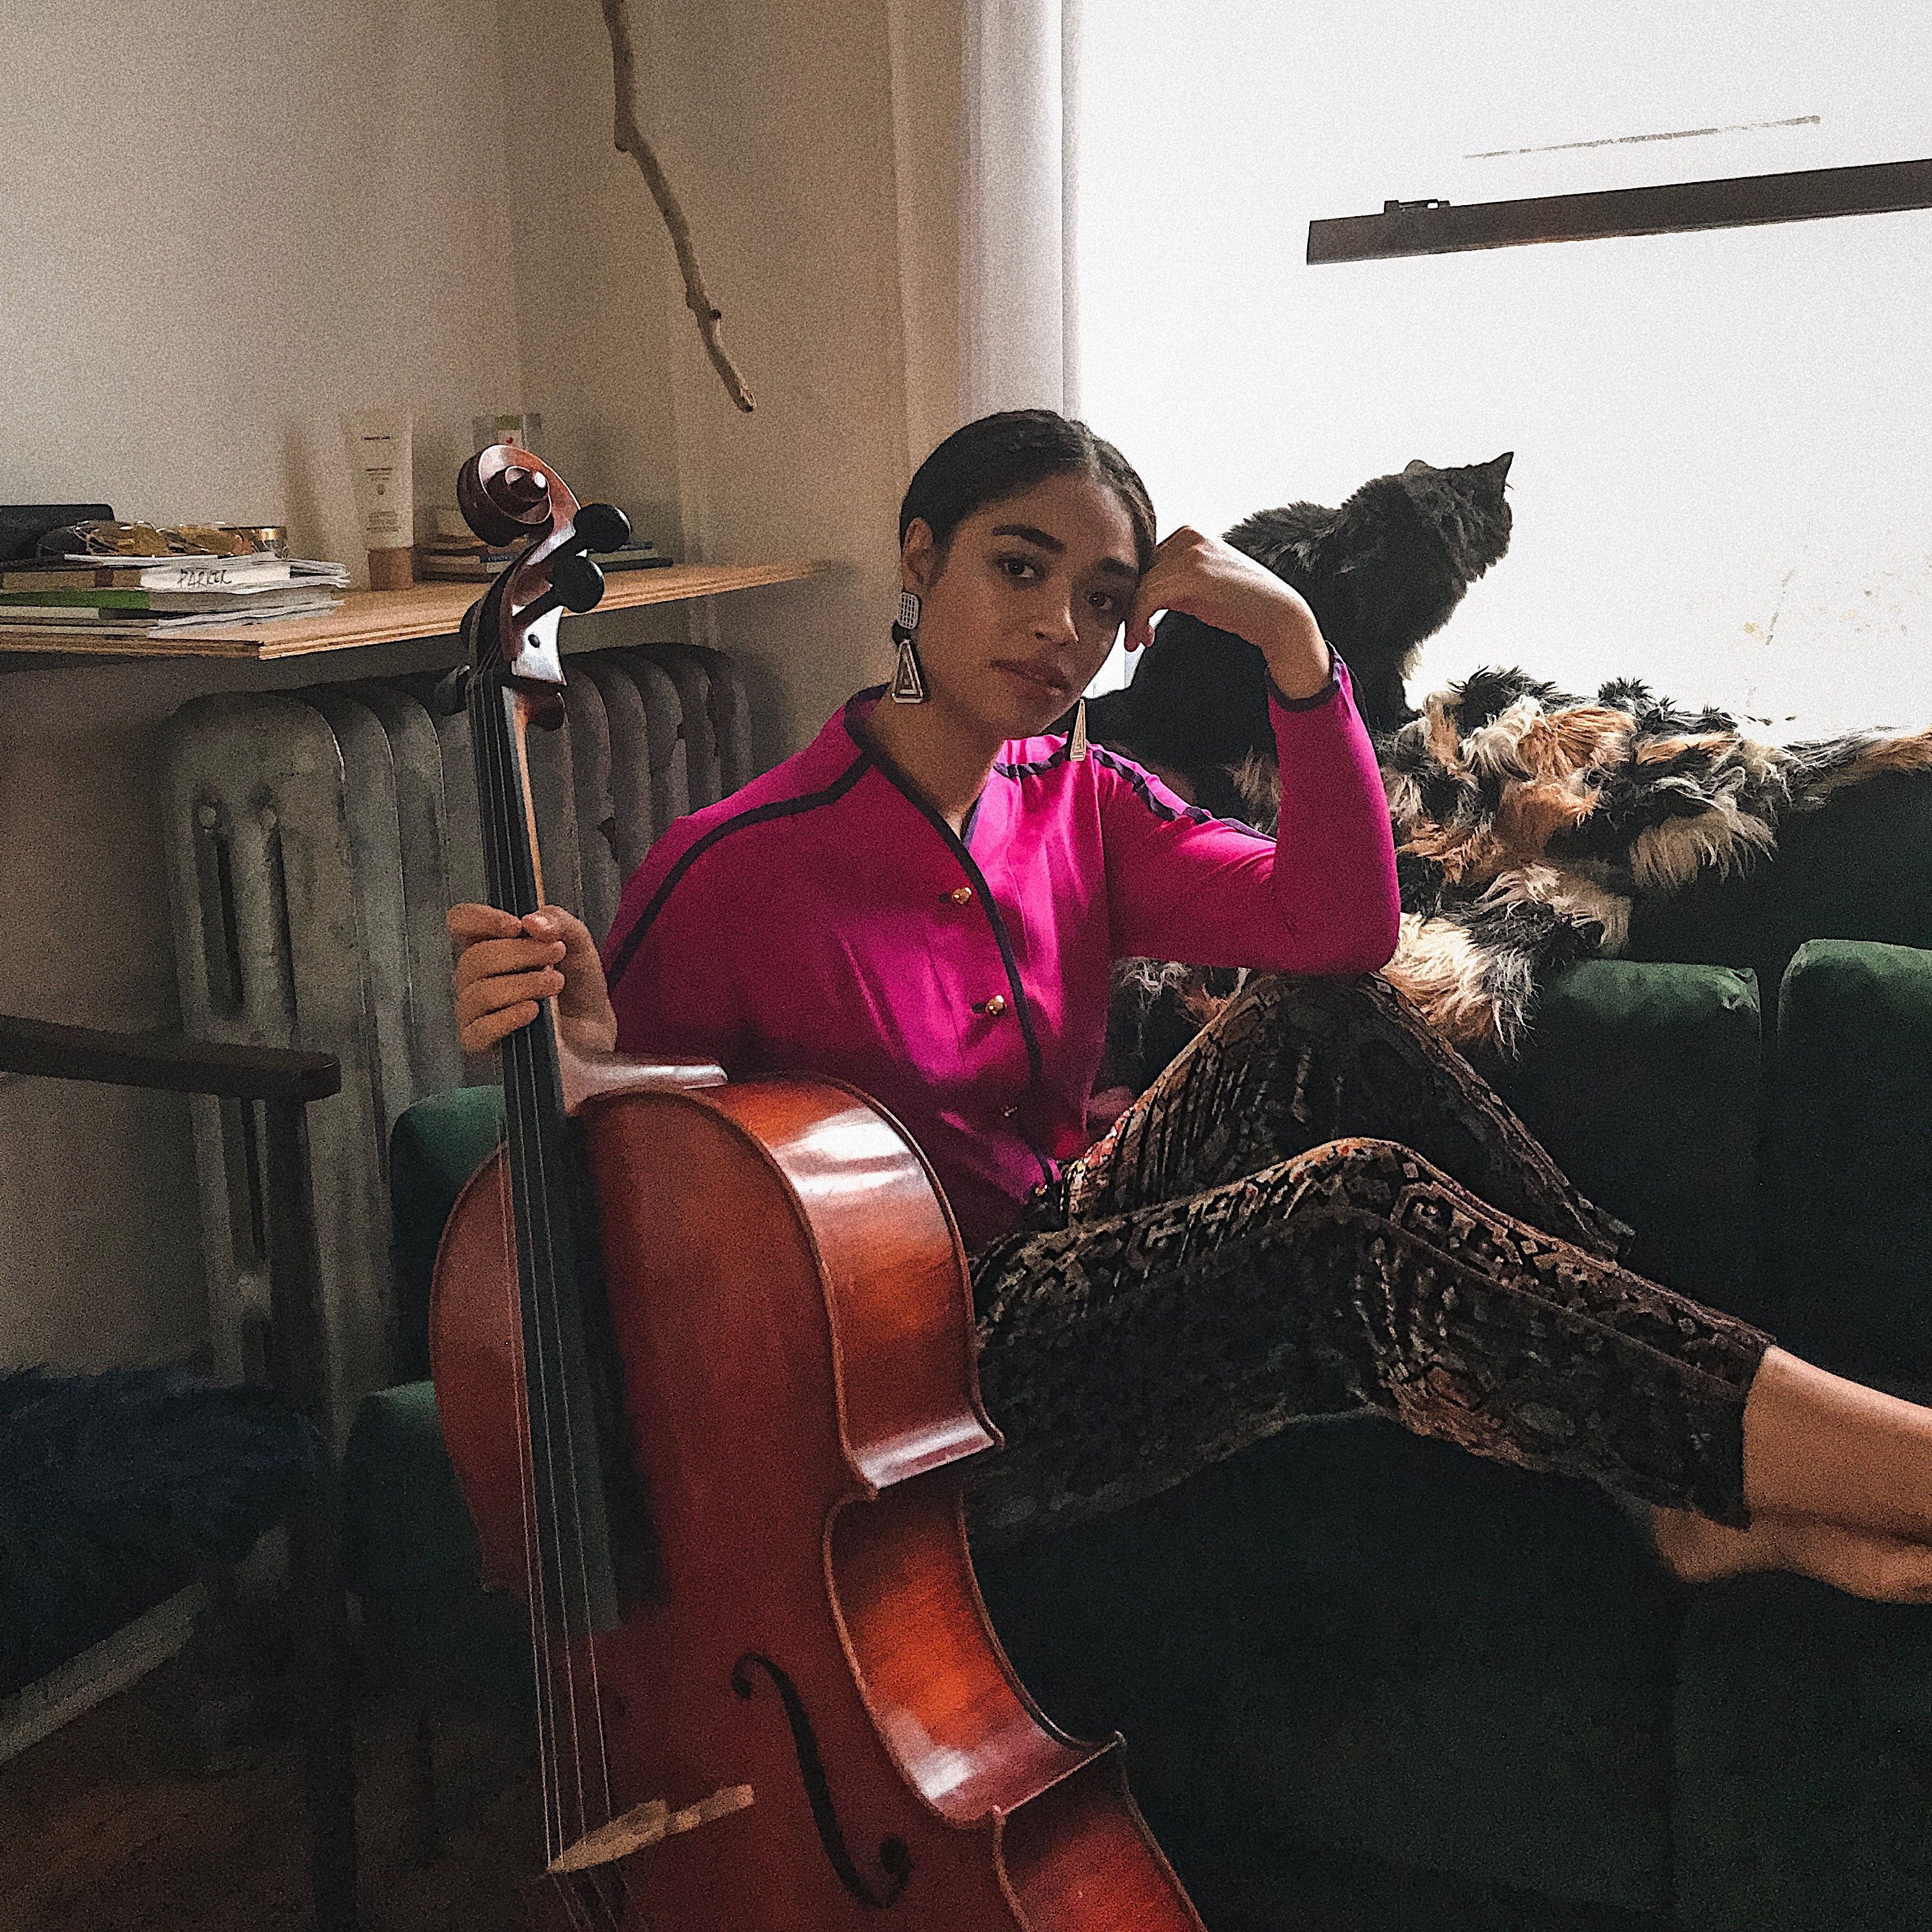 The Cellist Who Swears By Curology